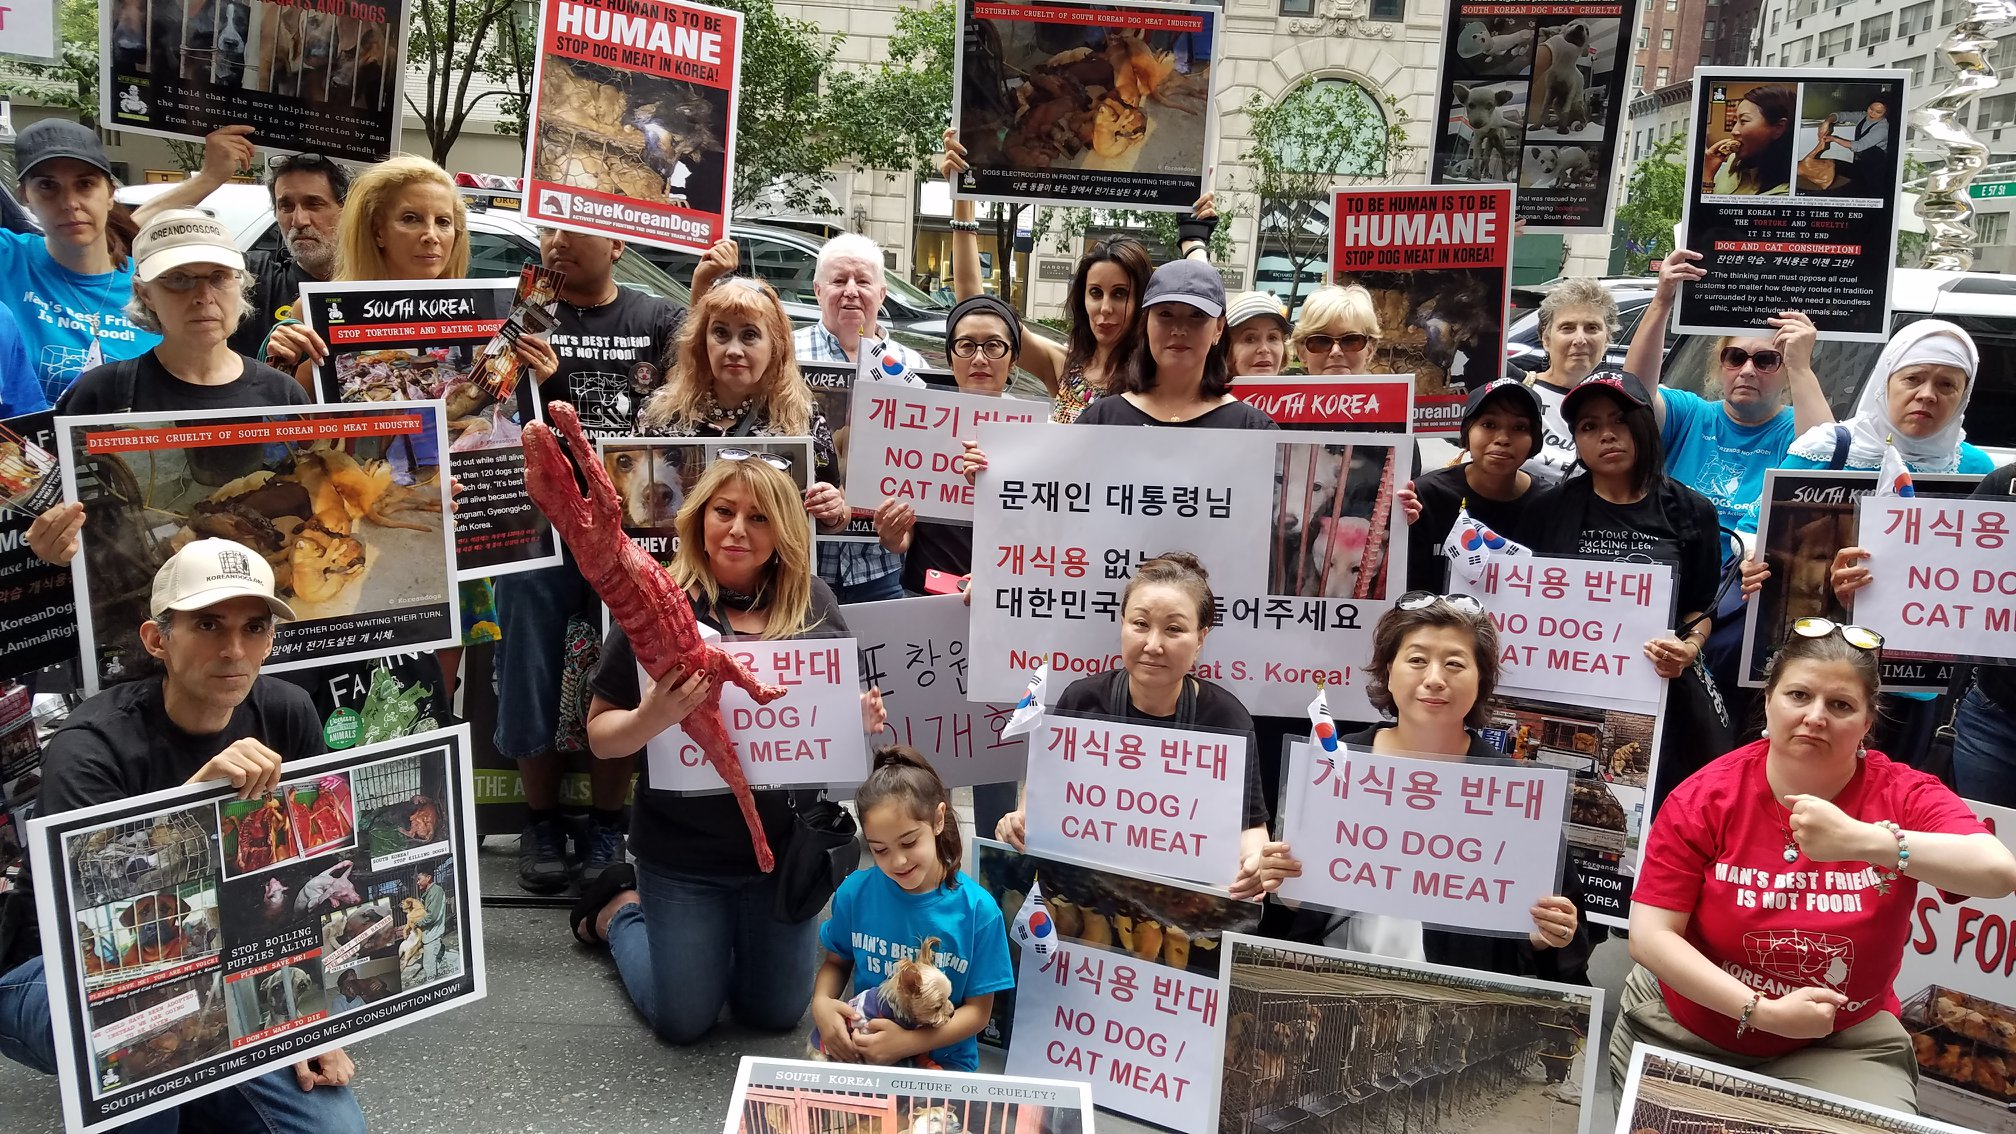 http://koreandogs.org/ny-demo-july-30-2018/?utm_source=sendinblue&utm_campaign=Help_keep_Nami_and_SaveKoreanDogsorg_save_dogs_from_hellish_South_Korean_dog_meat_industry&utm_medium=email